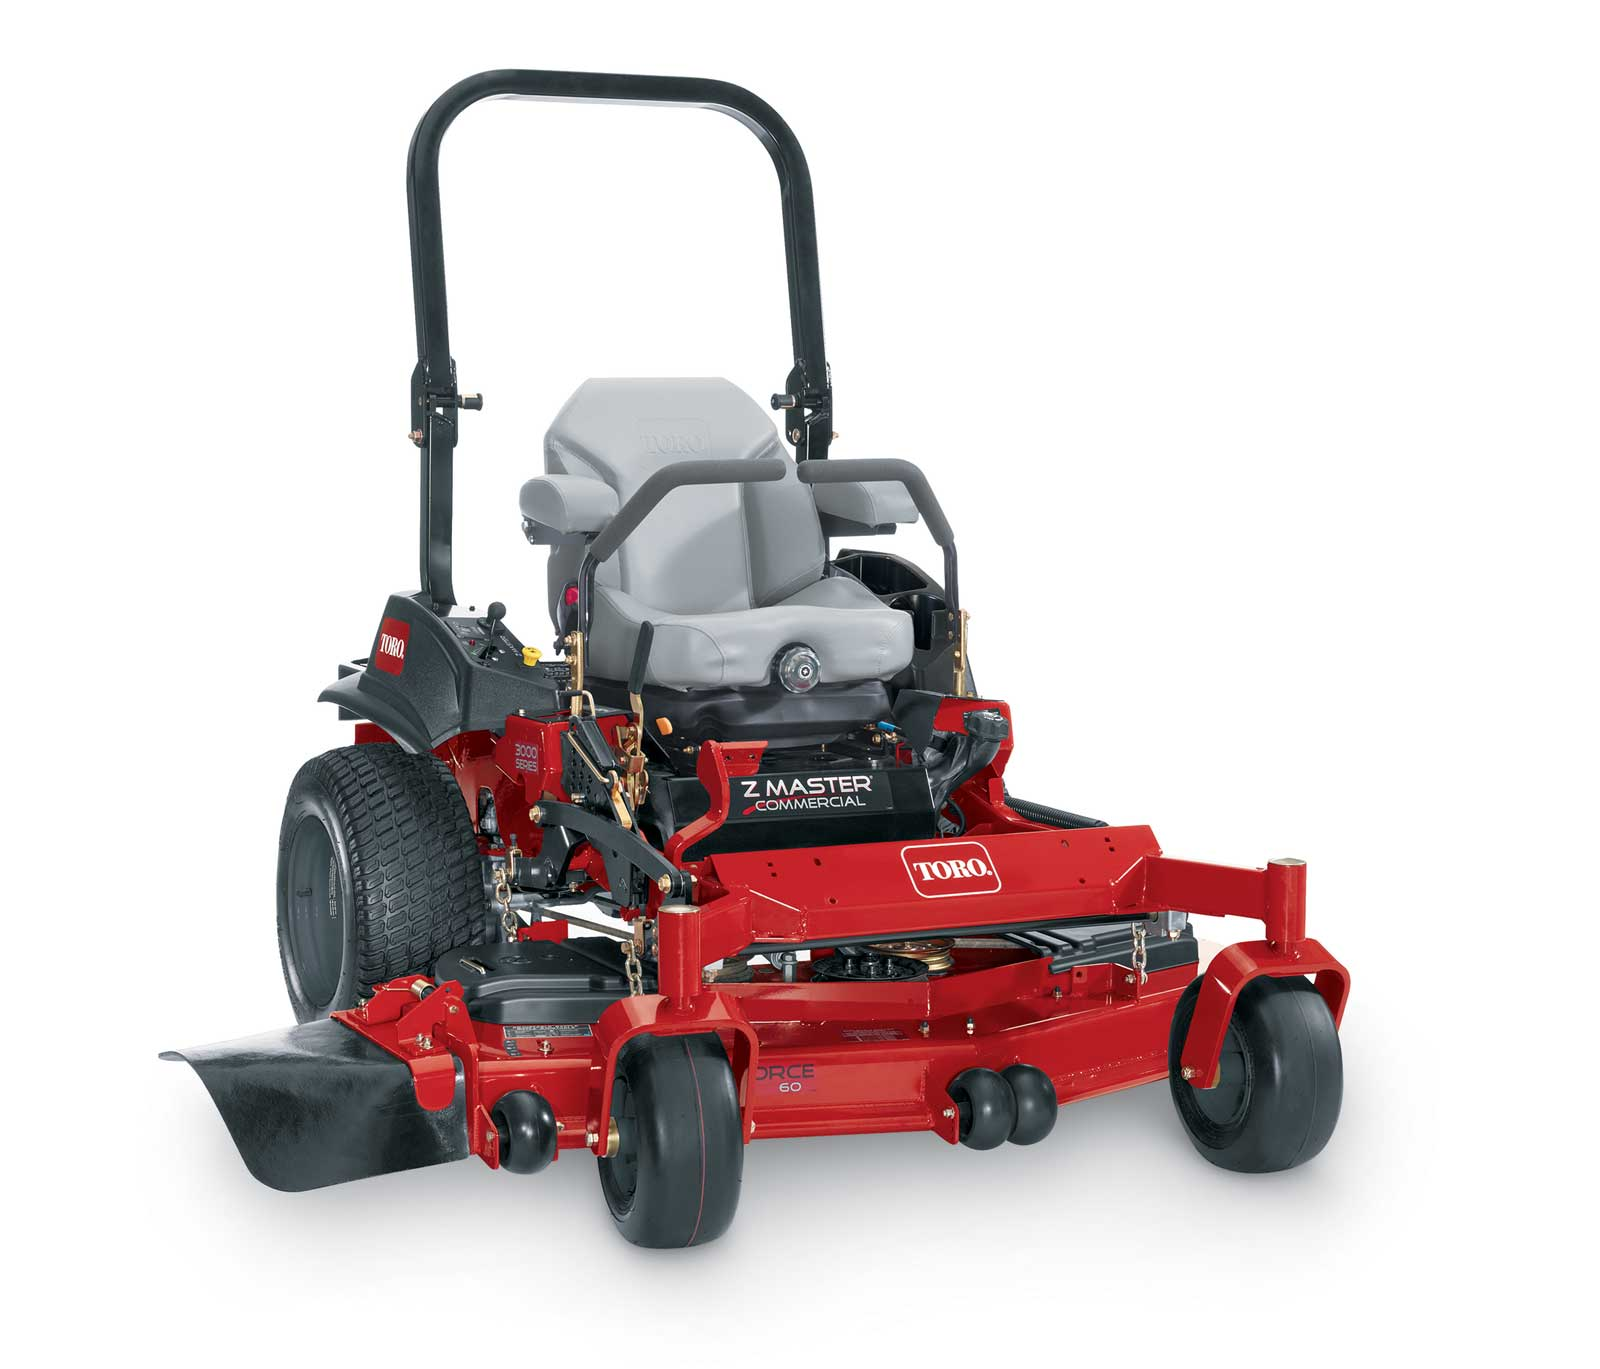 Get Up to 50% Off Toro Items at Amazon + Free Shipping w/Prime